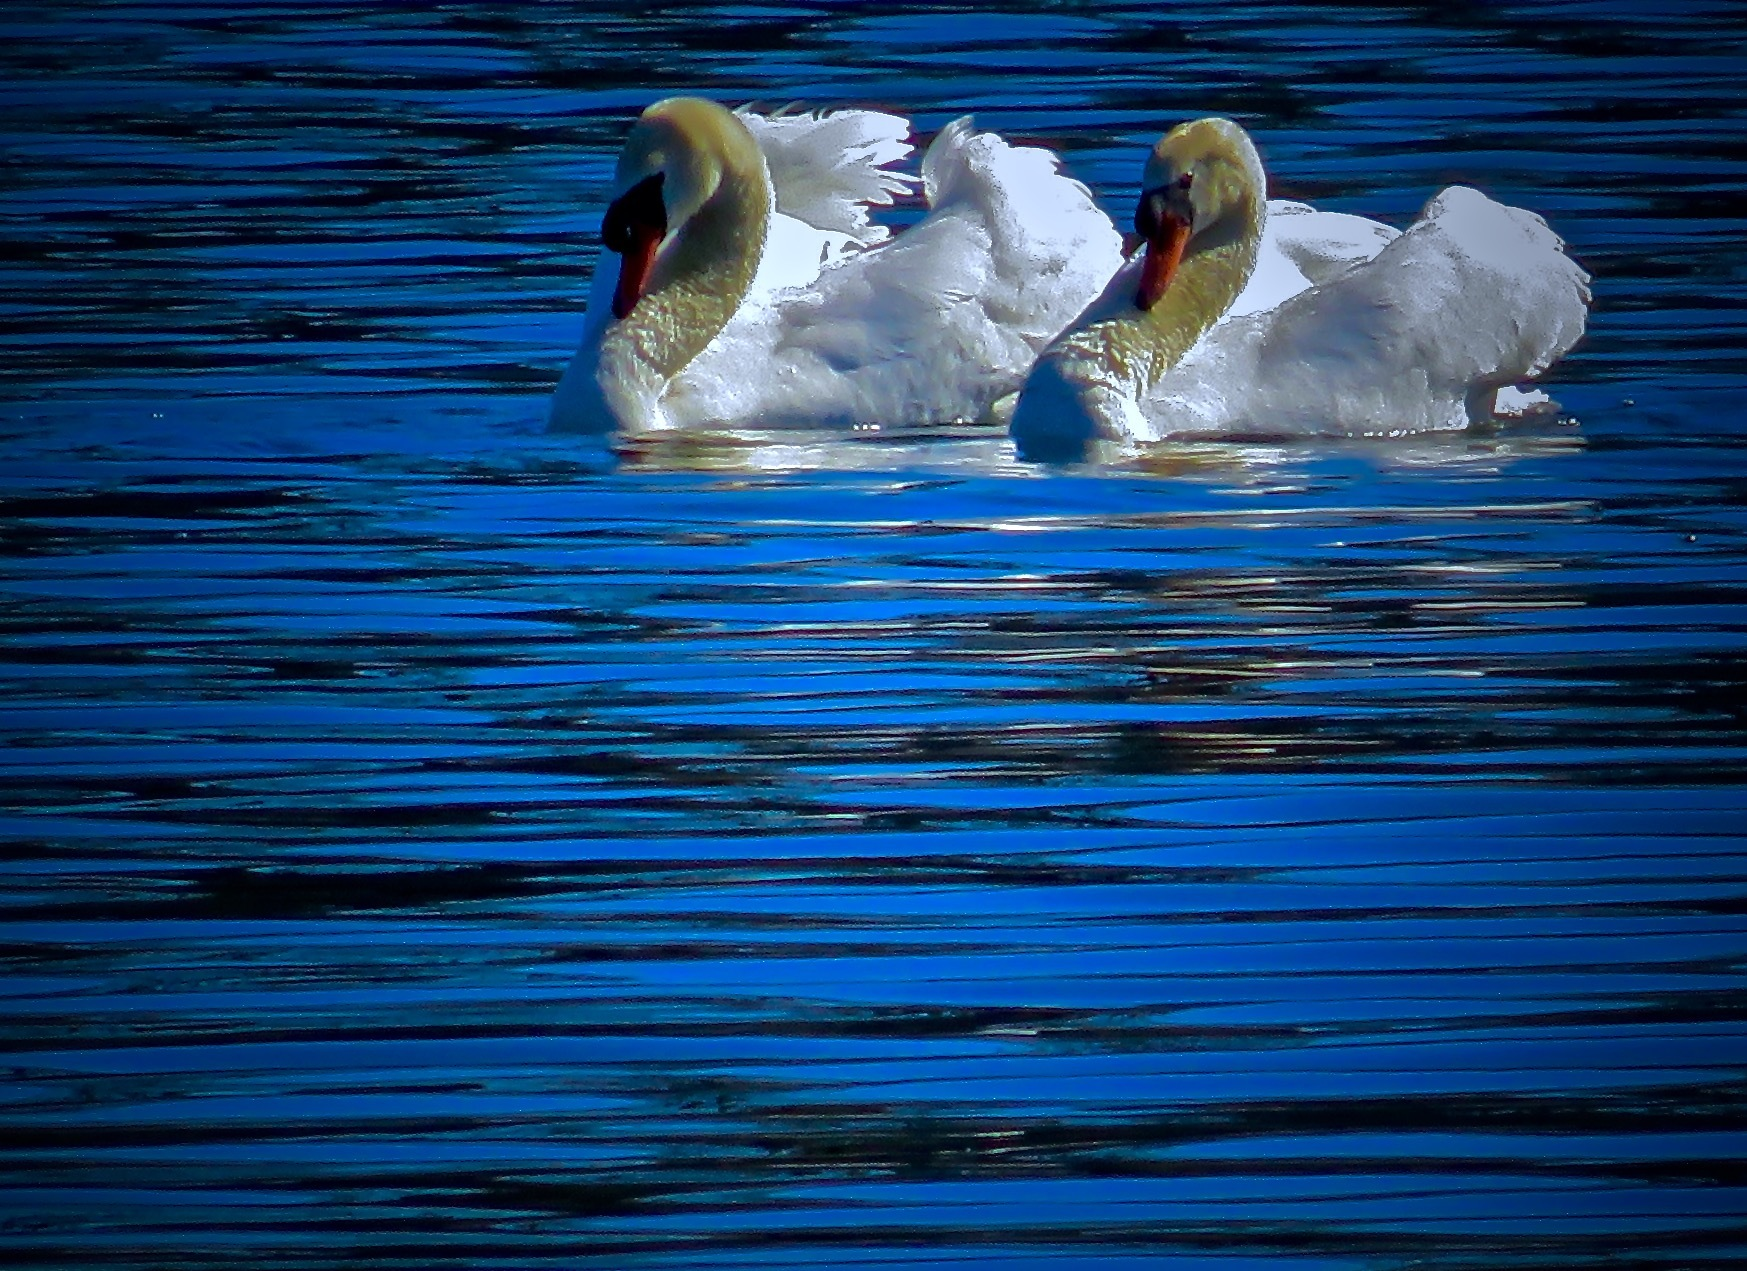 white n blue always seems to be paired off in twos  by David Devion